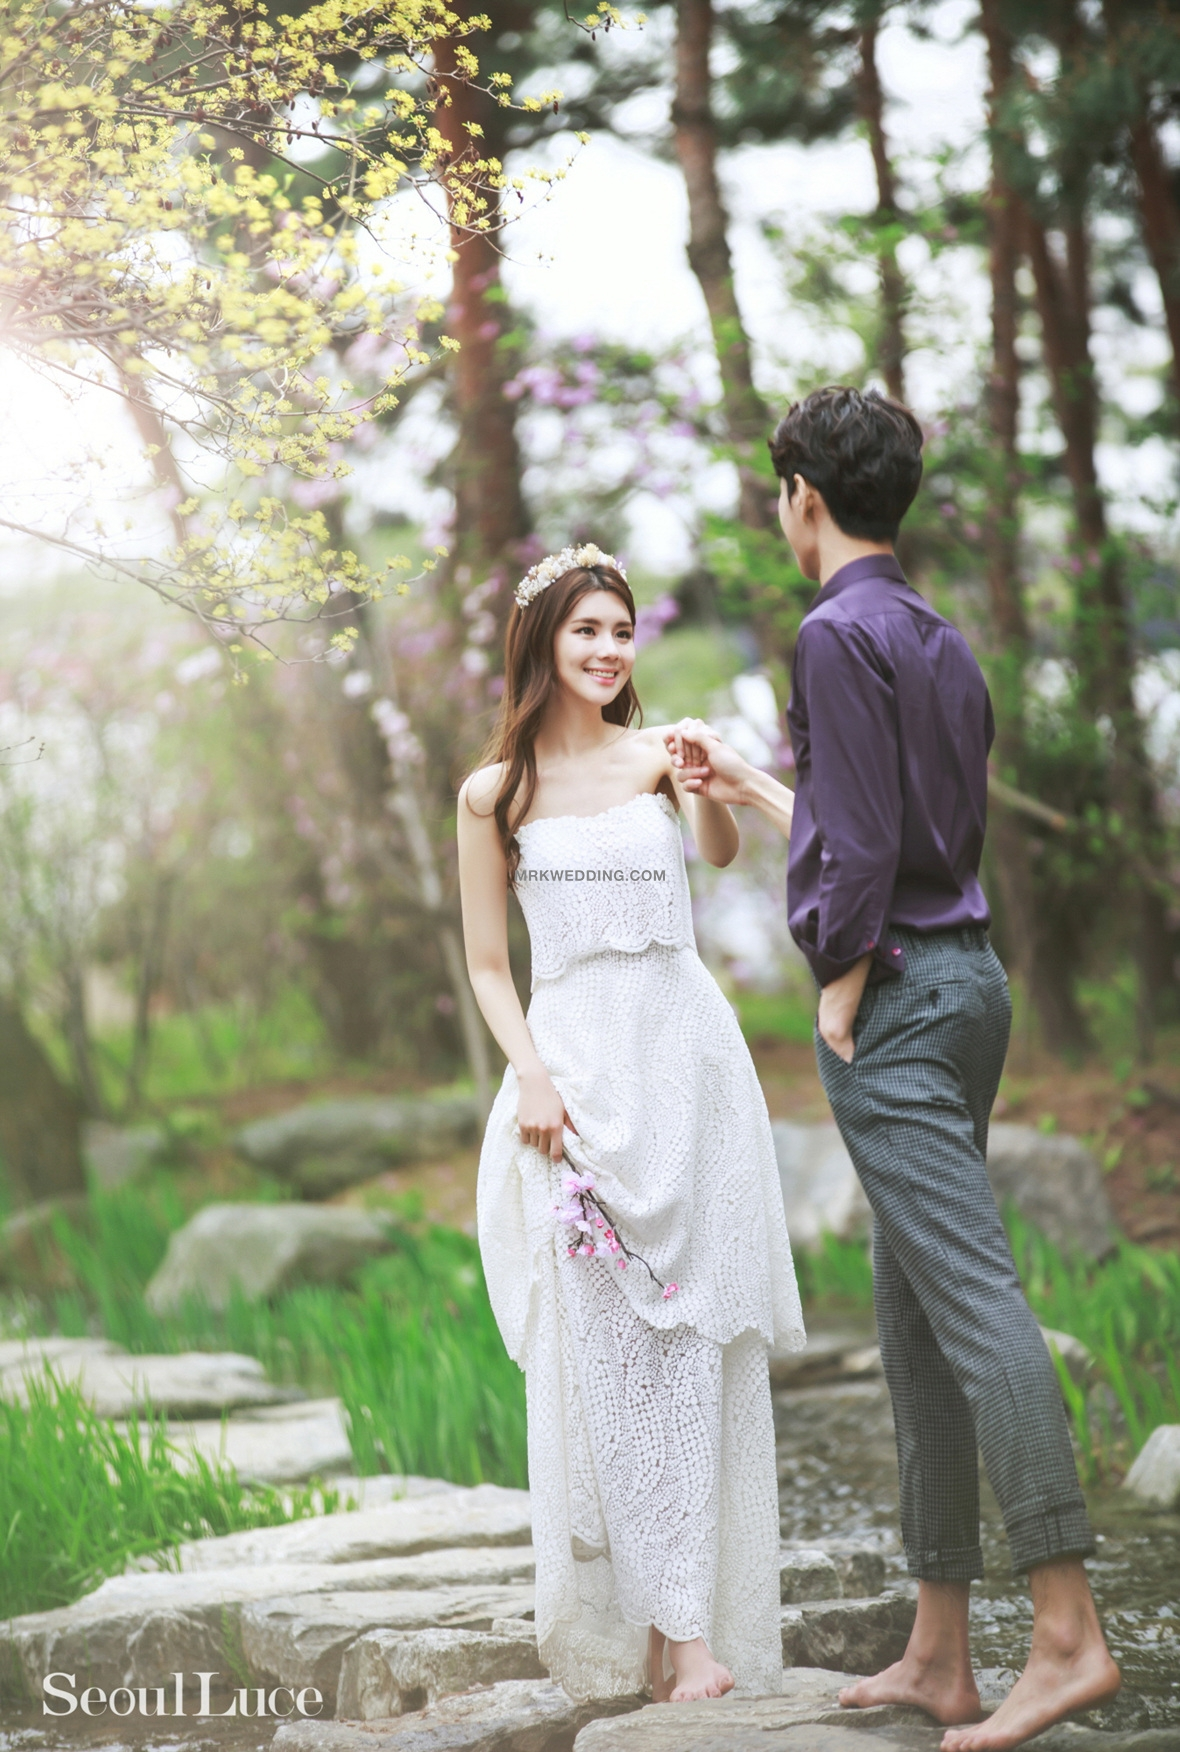 Korea pre wedding photography (128).jpg